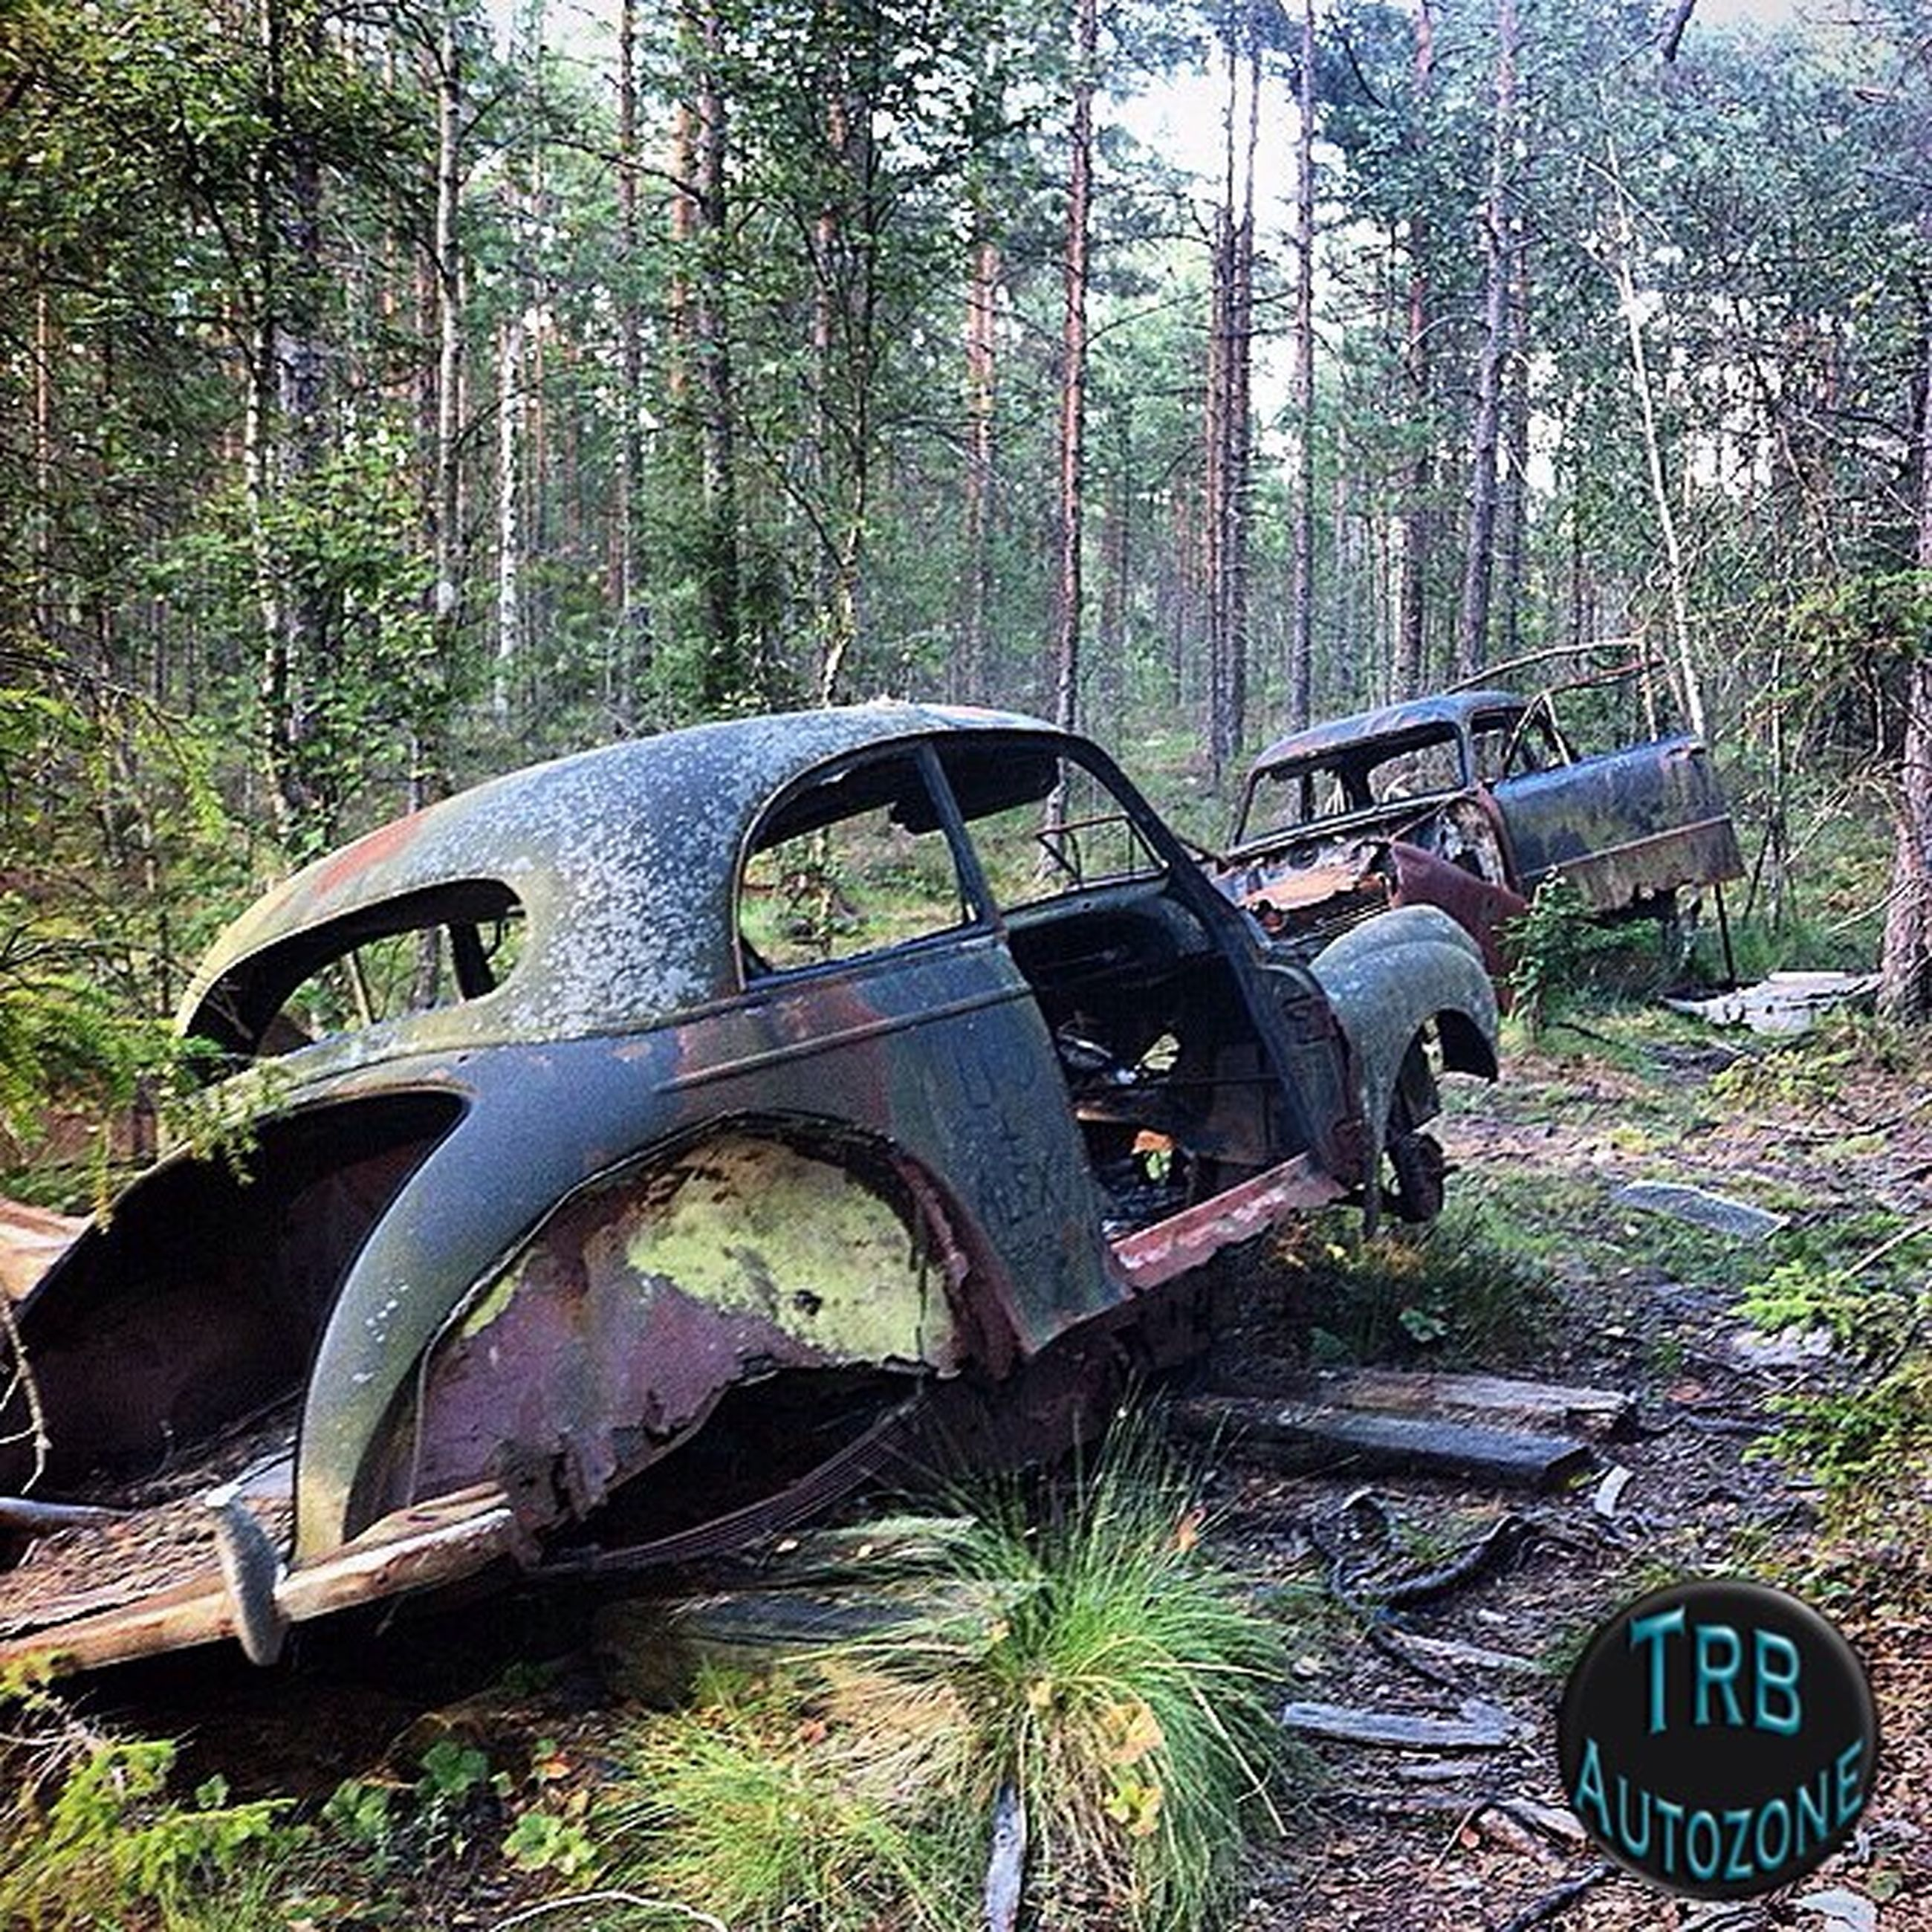 tree, abandoned, transportation, forest, obsolete, old, damaged, mode of transport, deterioration, run-down, rusty, land vehicle, day, text, outdoors, no people, weathered, communication, car, growth